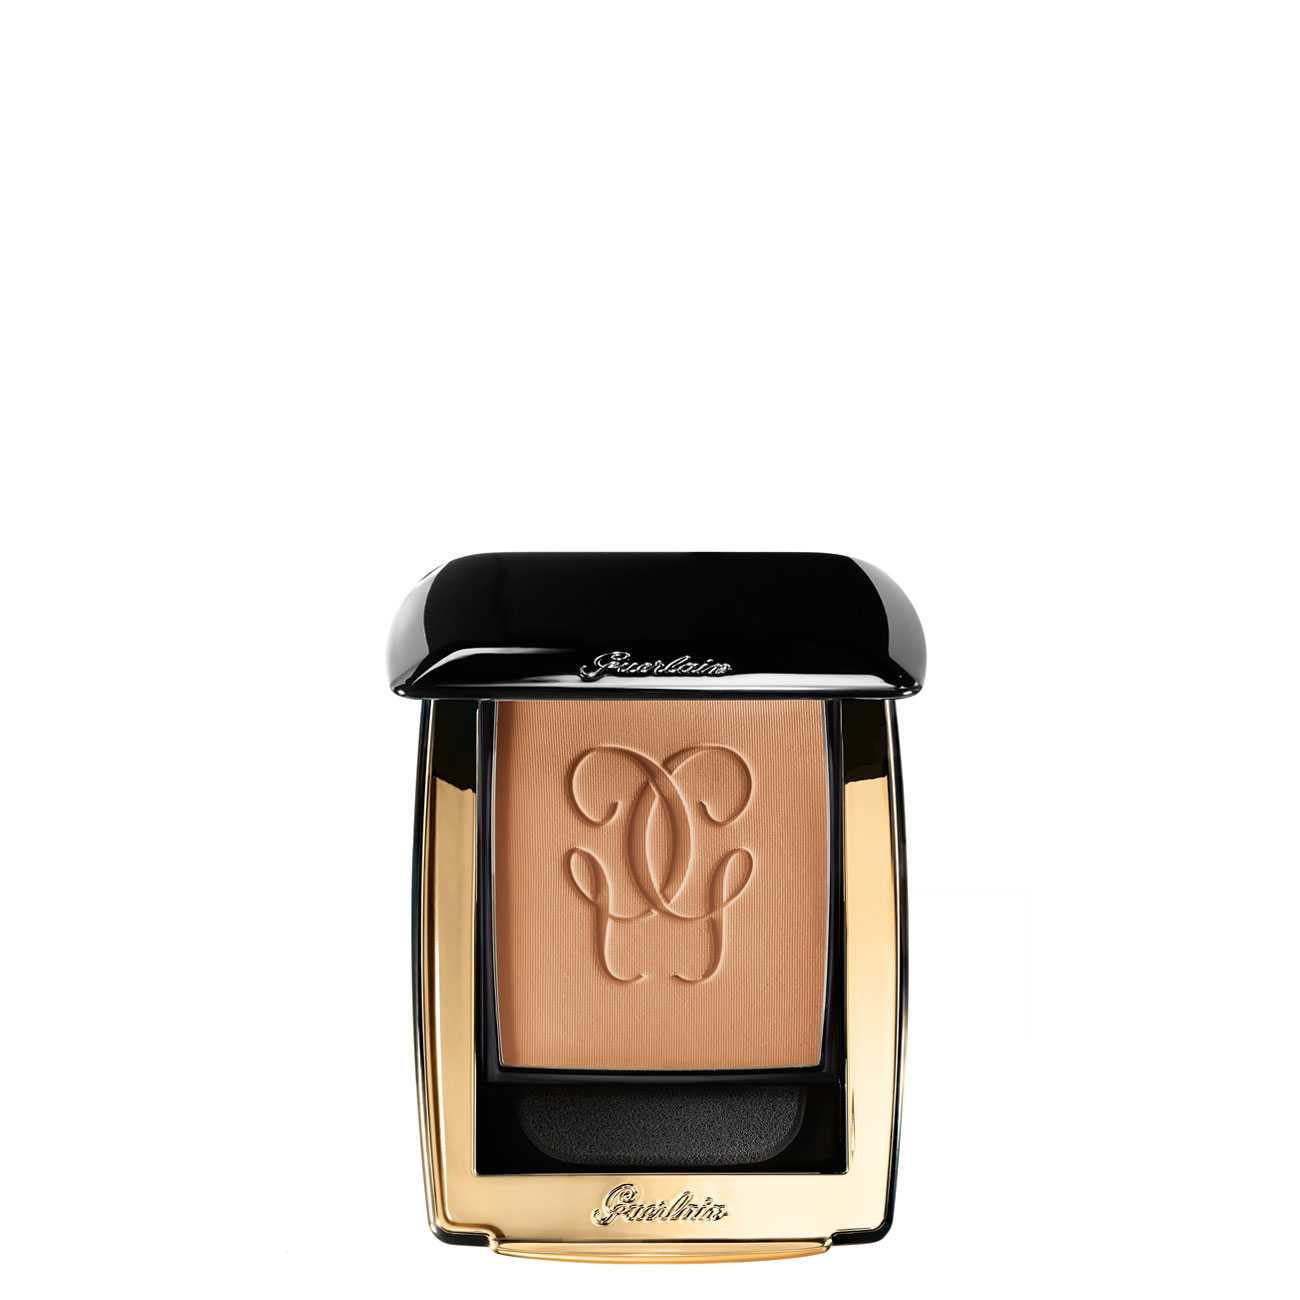 PARURE GOLD COMPACT FOUNDATION 10 G BEIGE MOYEN 4 imagine produs